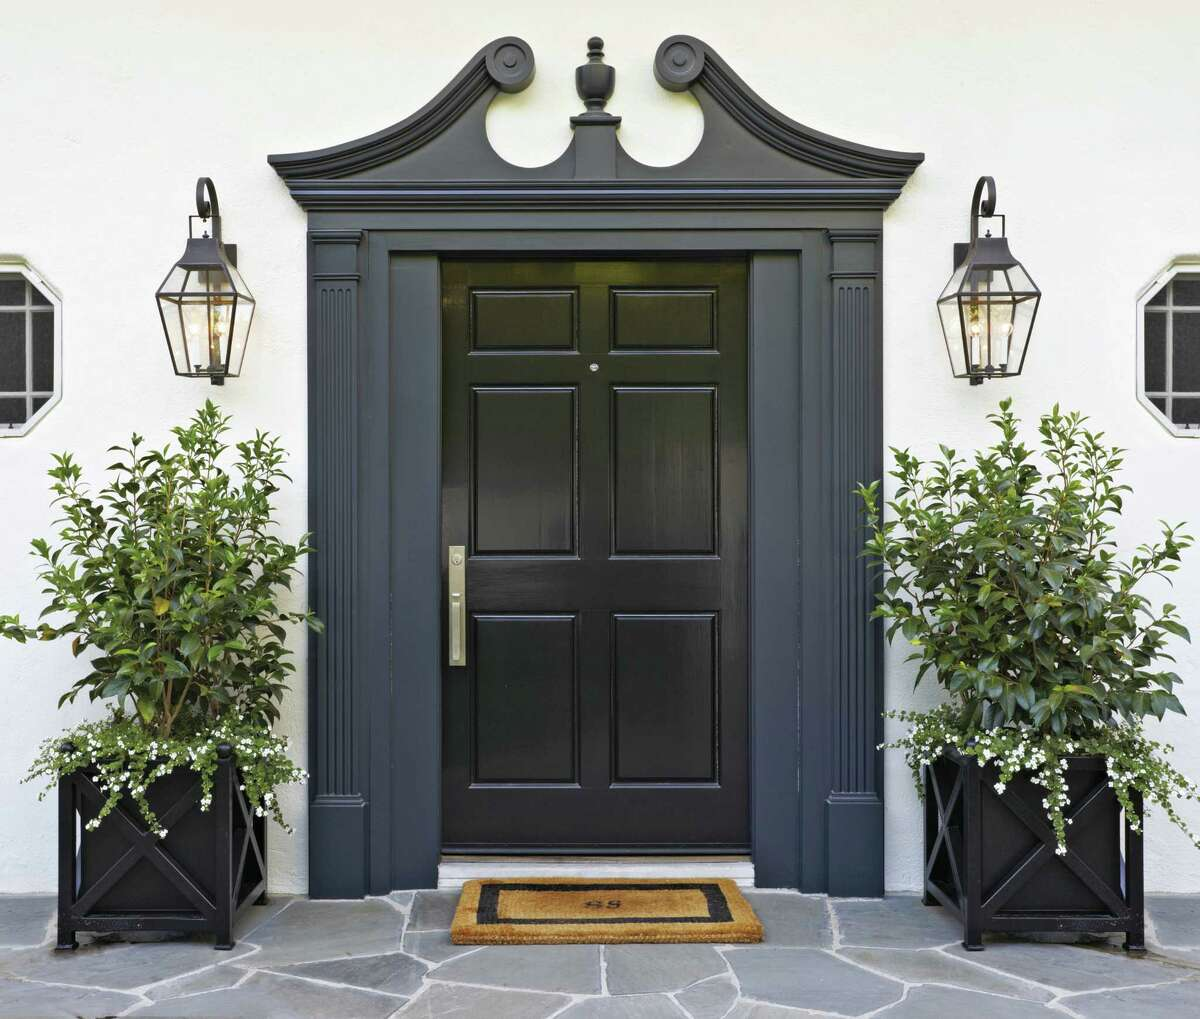 The front door of Molly Sims' Beverly Hills home.